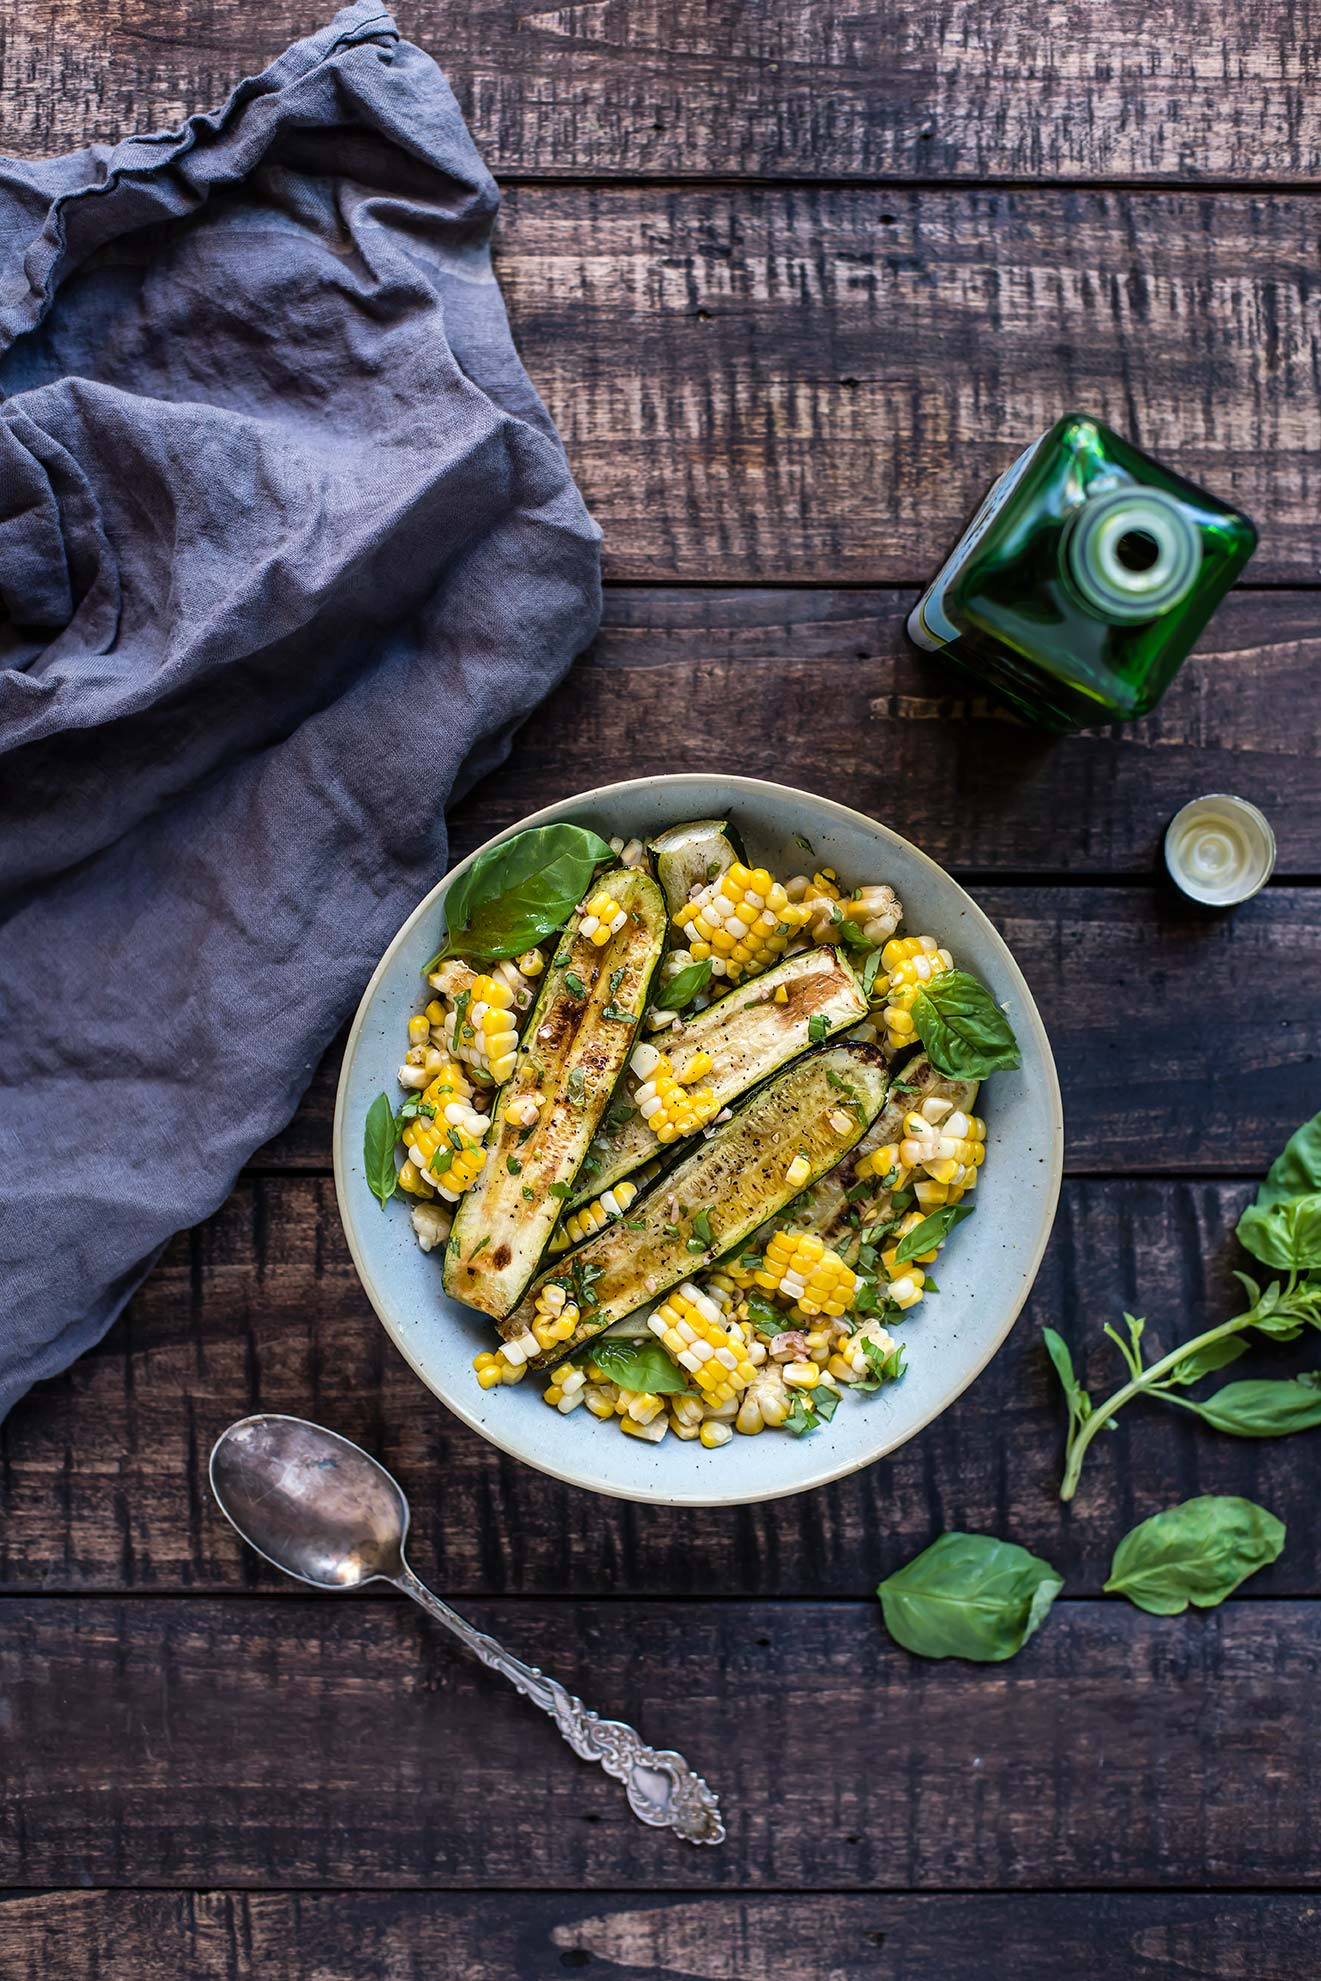 Roasted Zucchini, Corn & Basil Salad